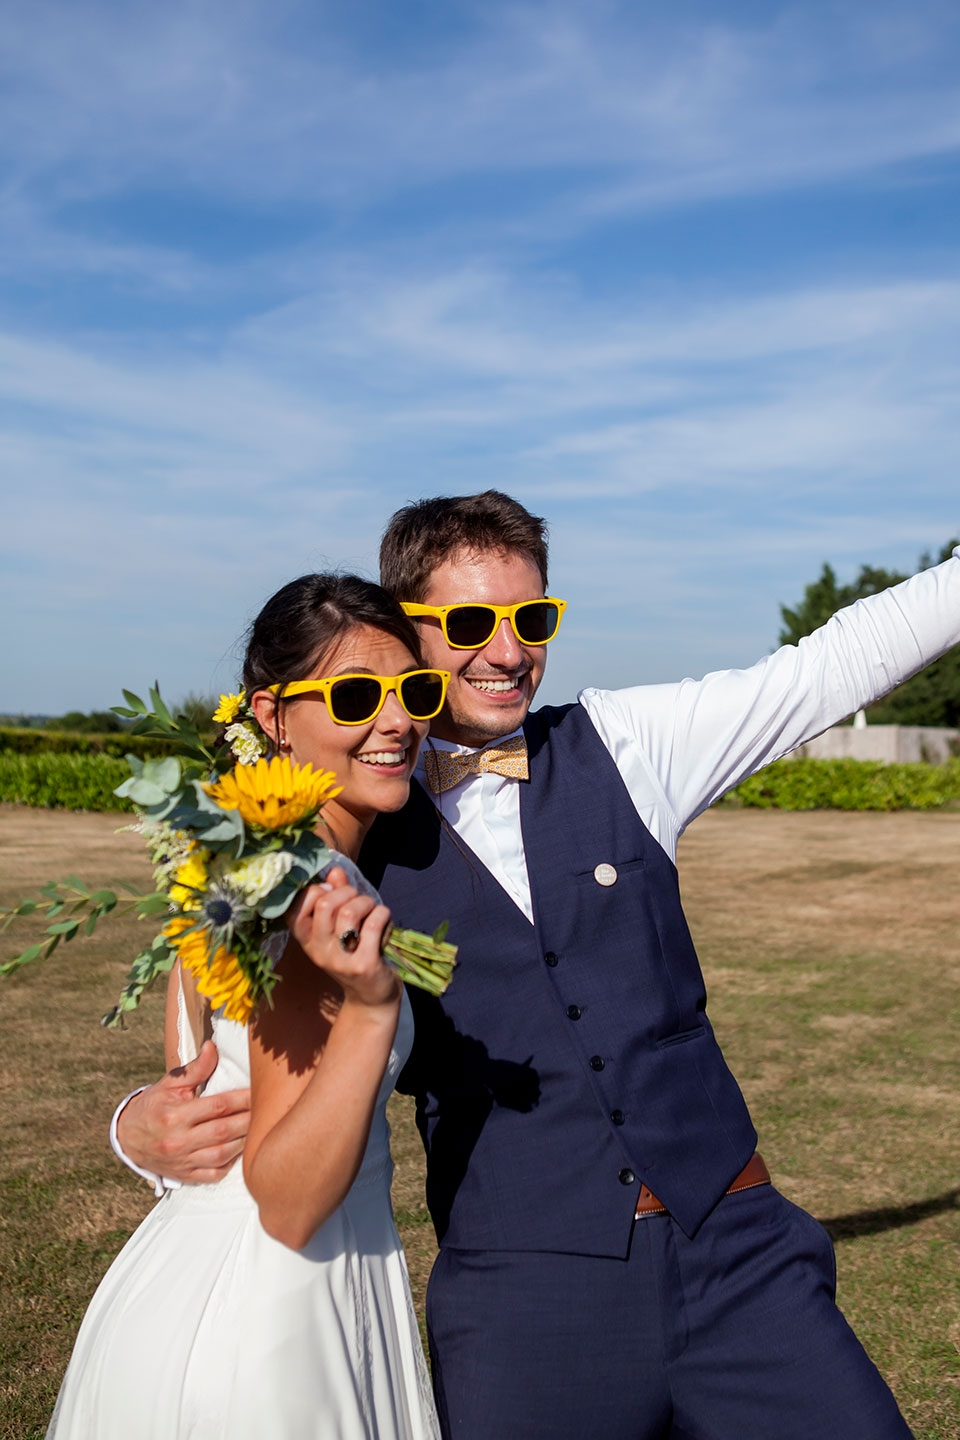 particuliers-evenements-mariage-oui-elise&quentin-56